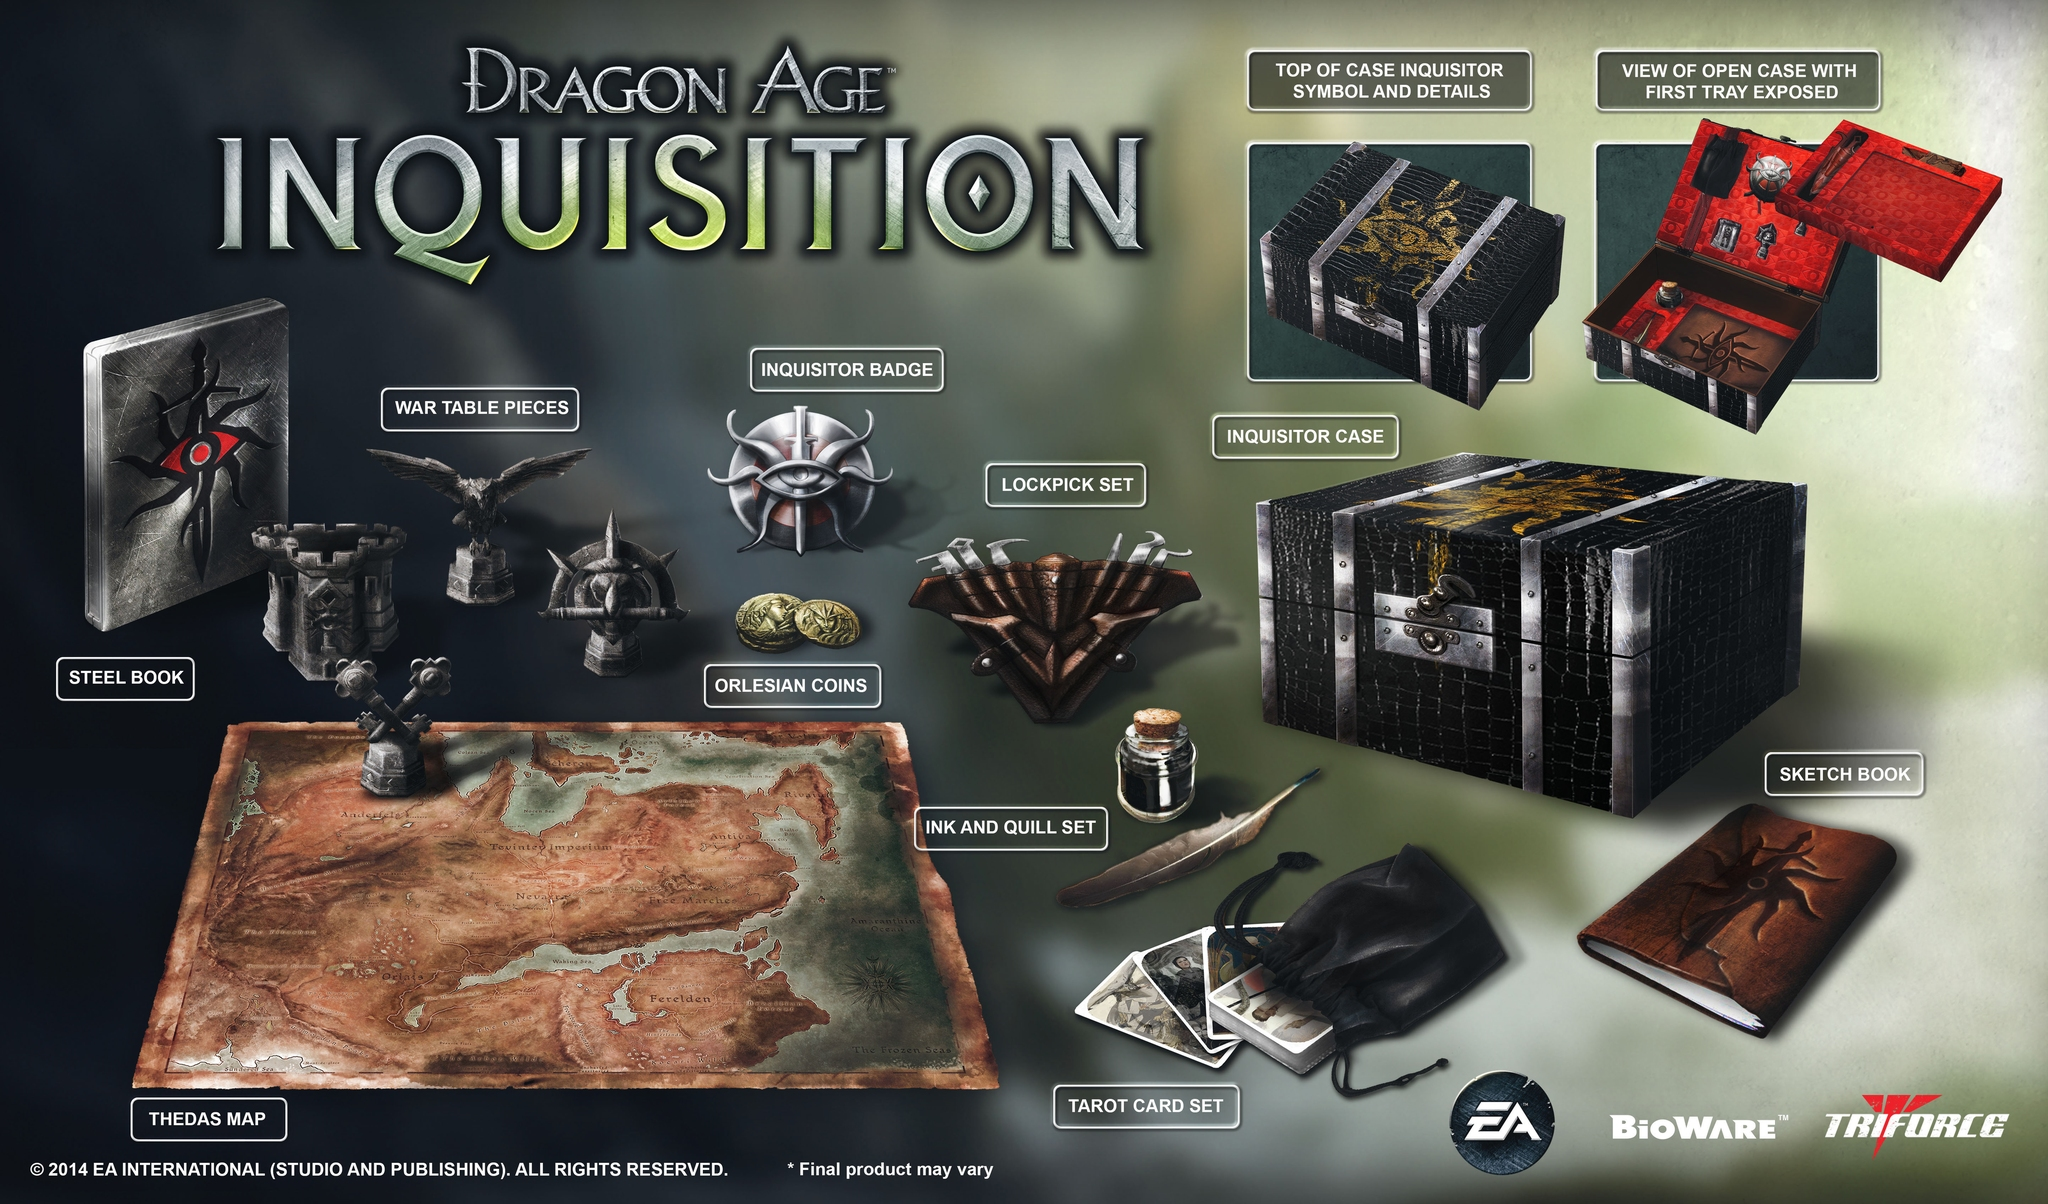 Lastly We Have The Inquisitors Edition Which Is Exclusive To